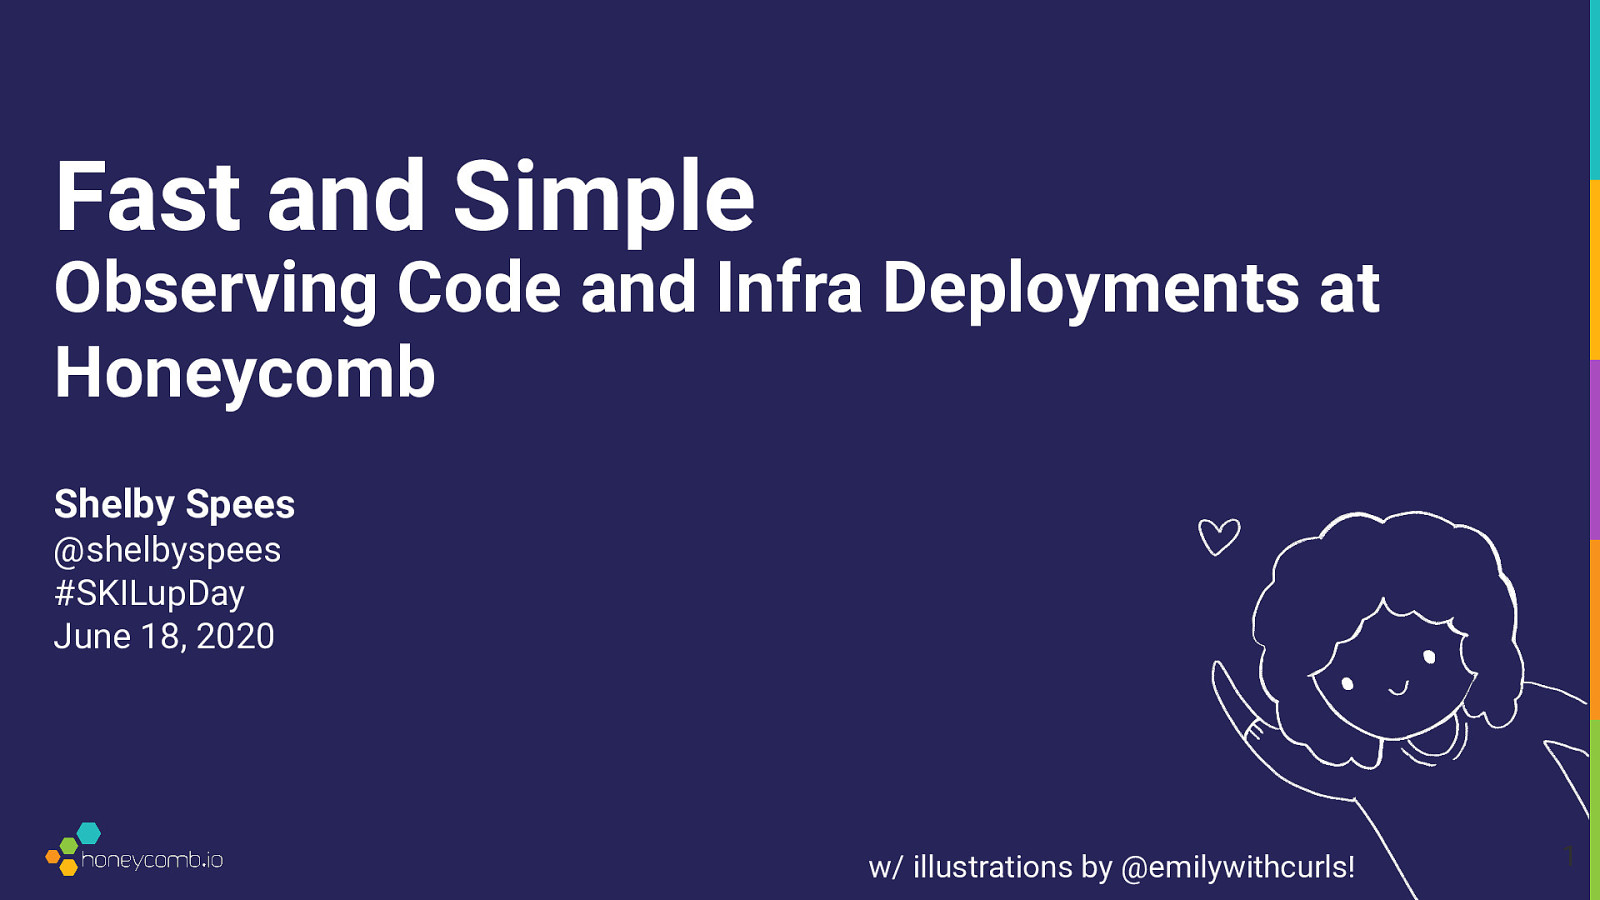 Fast and Simple: Observing Code and Infra Deployments at Honeycomb